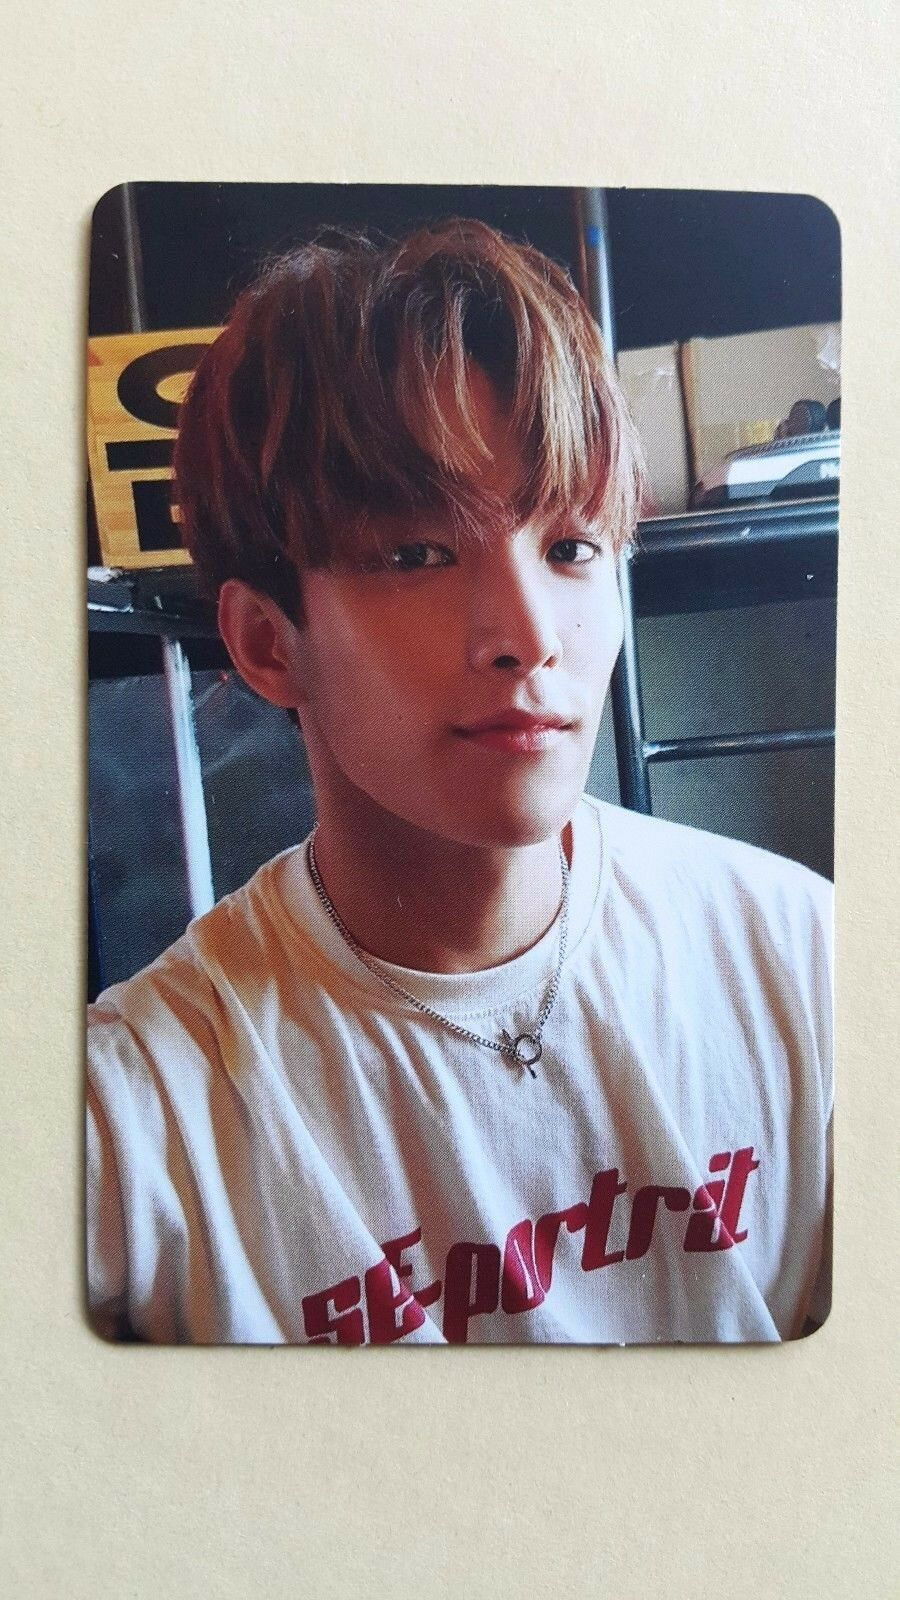 Seventeen 2nd Album Teen Age Kpop Photo Card Official Photocard Dk D Item Number 263364535309